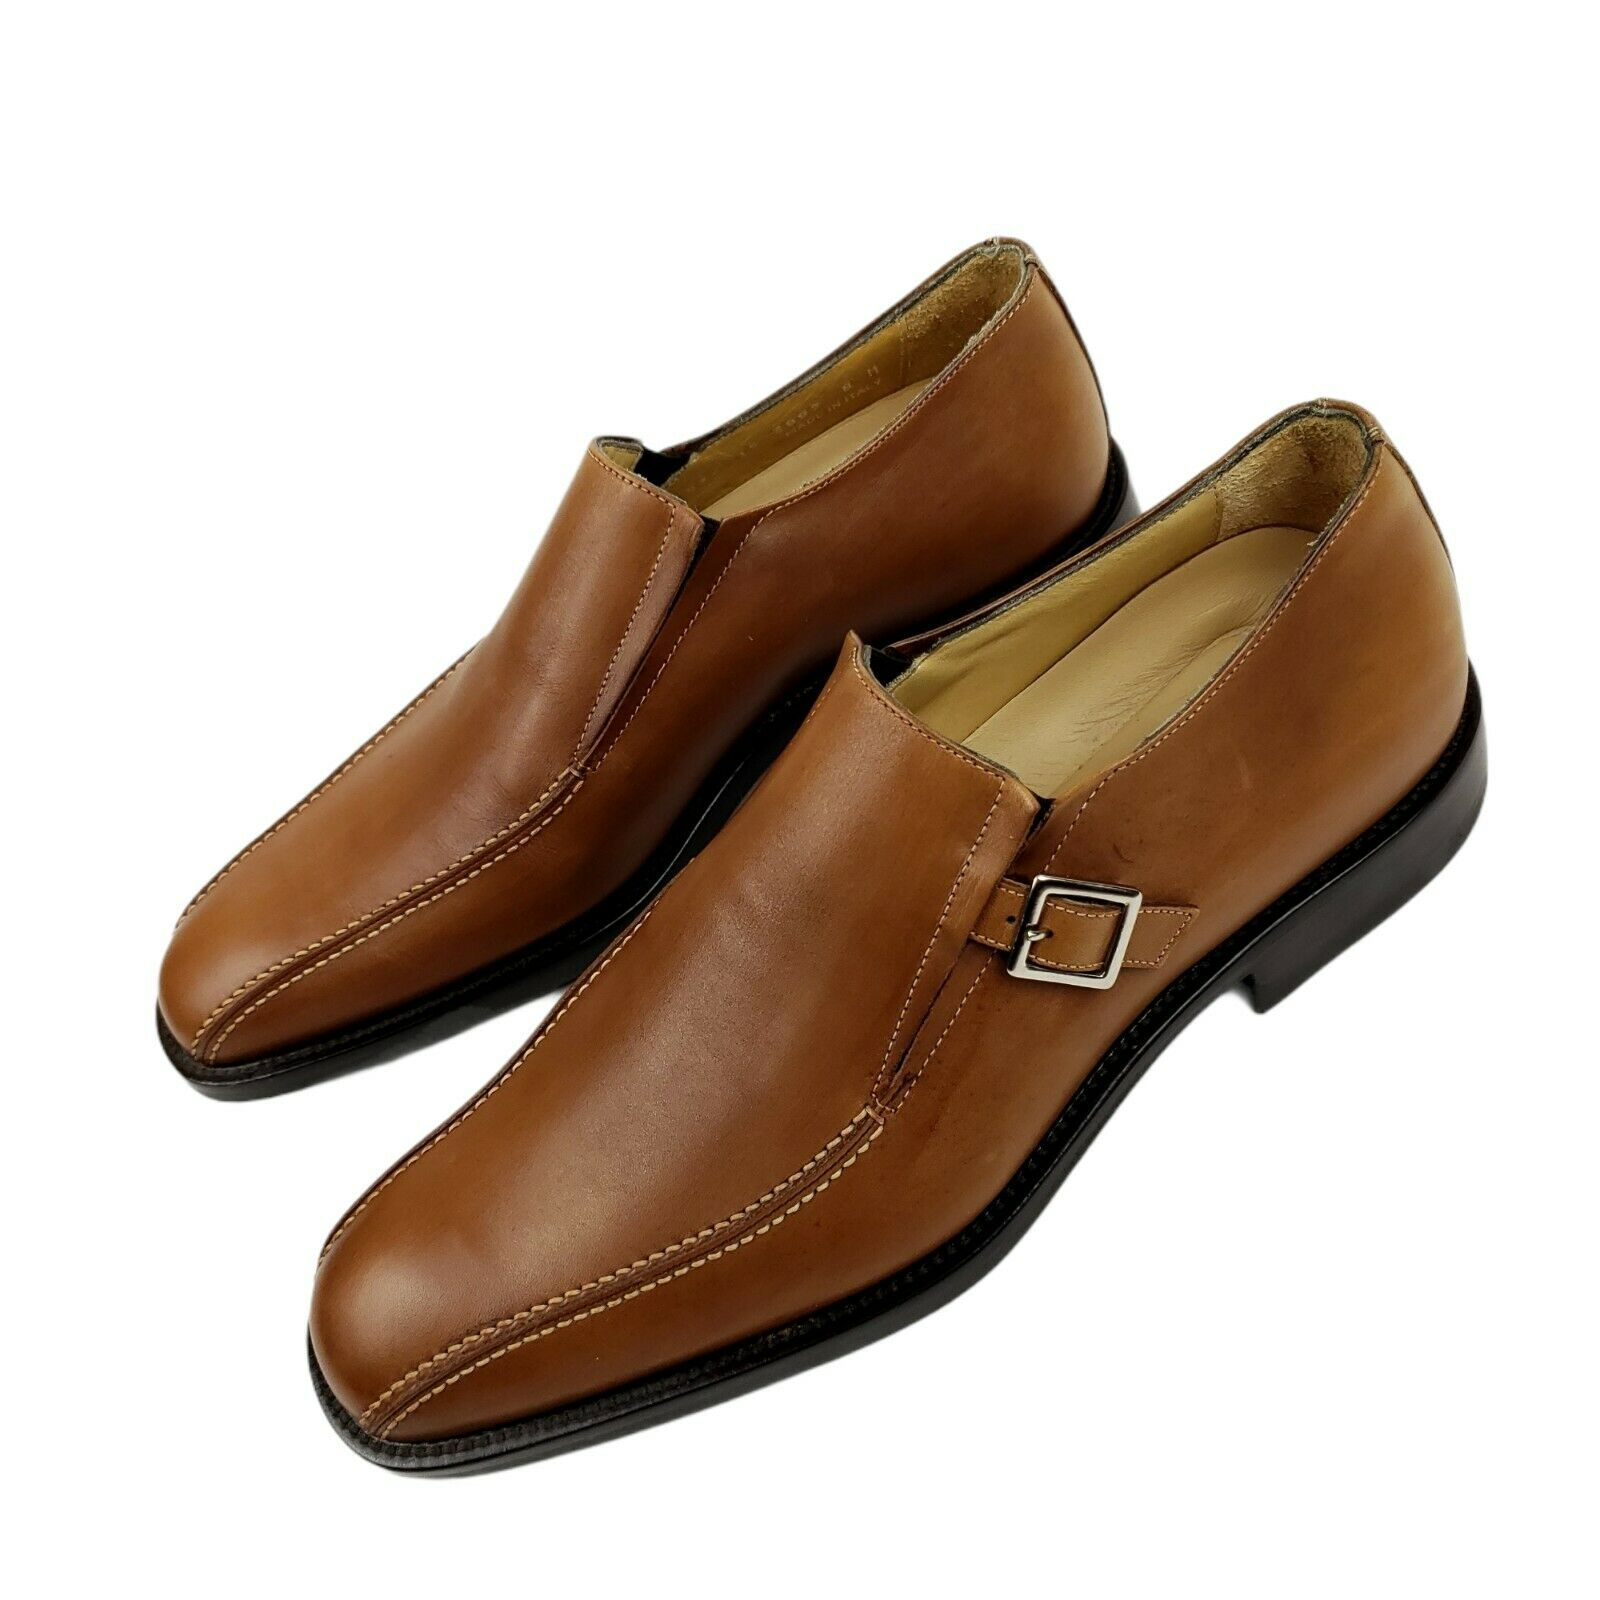 JOHNSTON & MURPHY Signature Series Brown Dress Shoes Monk Strap Loafers 8 M